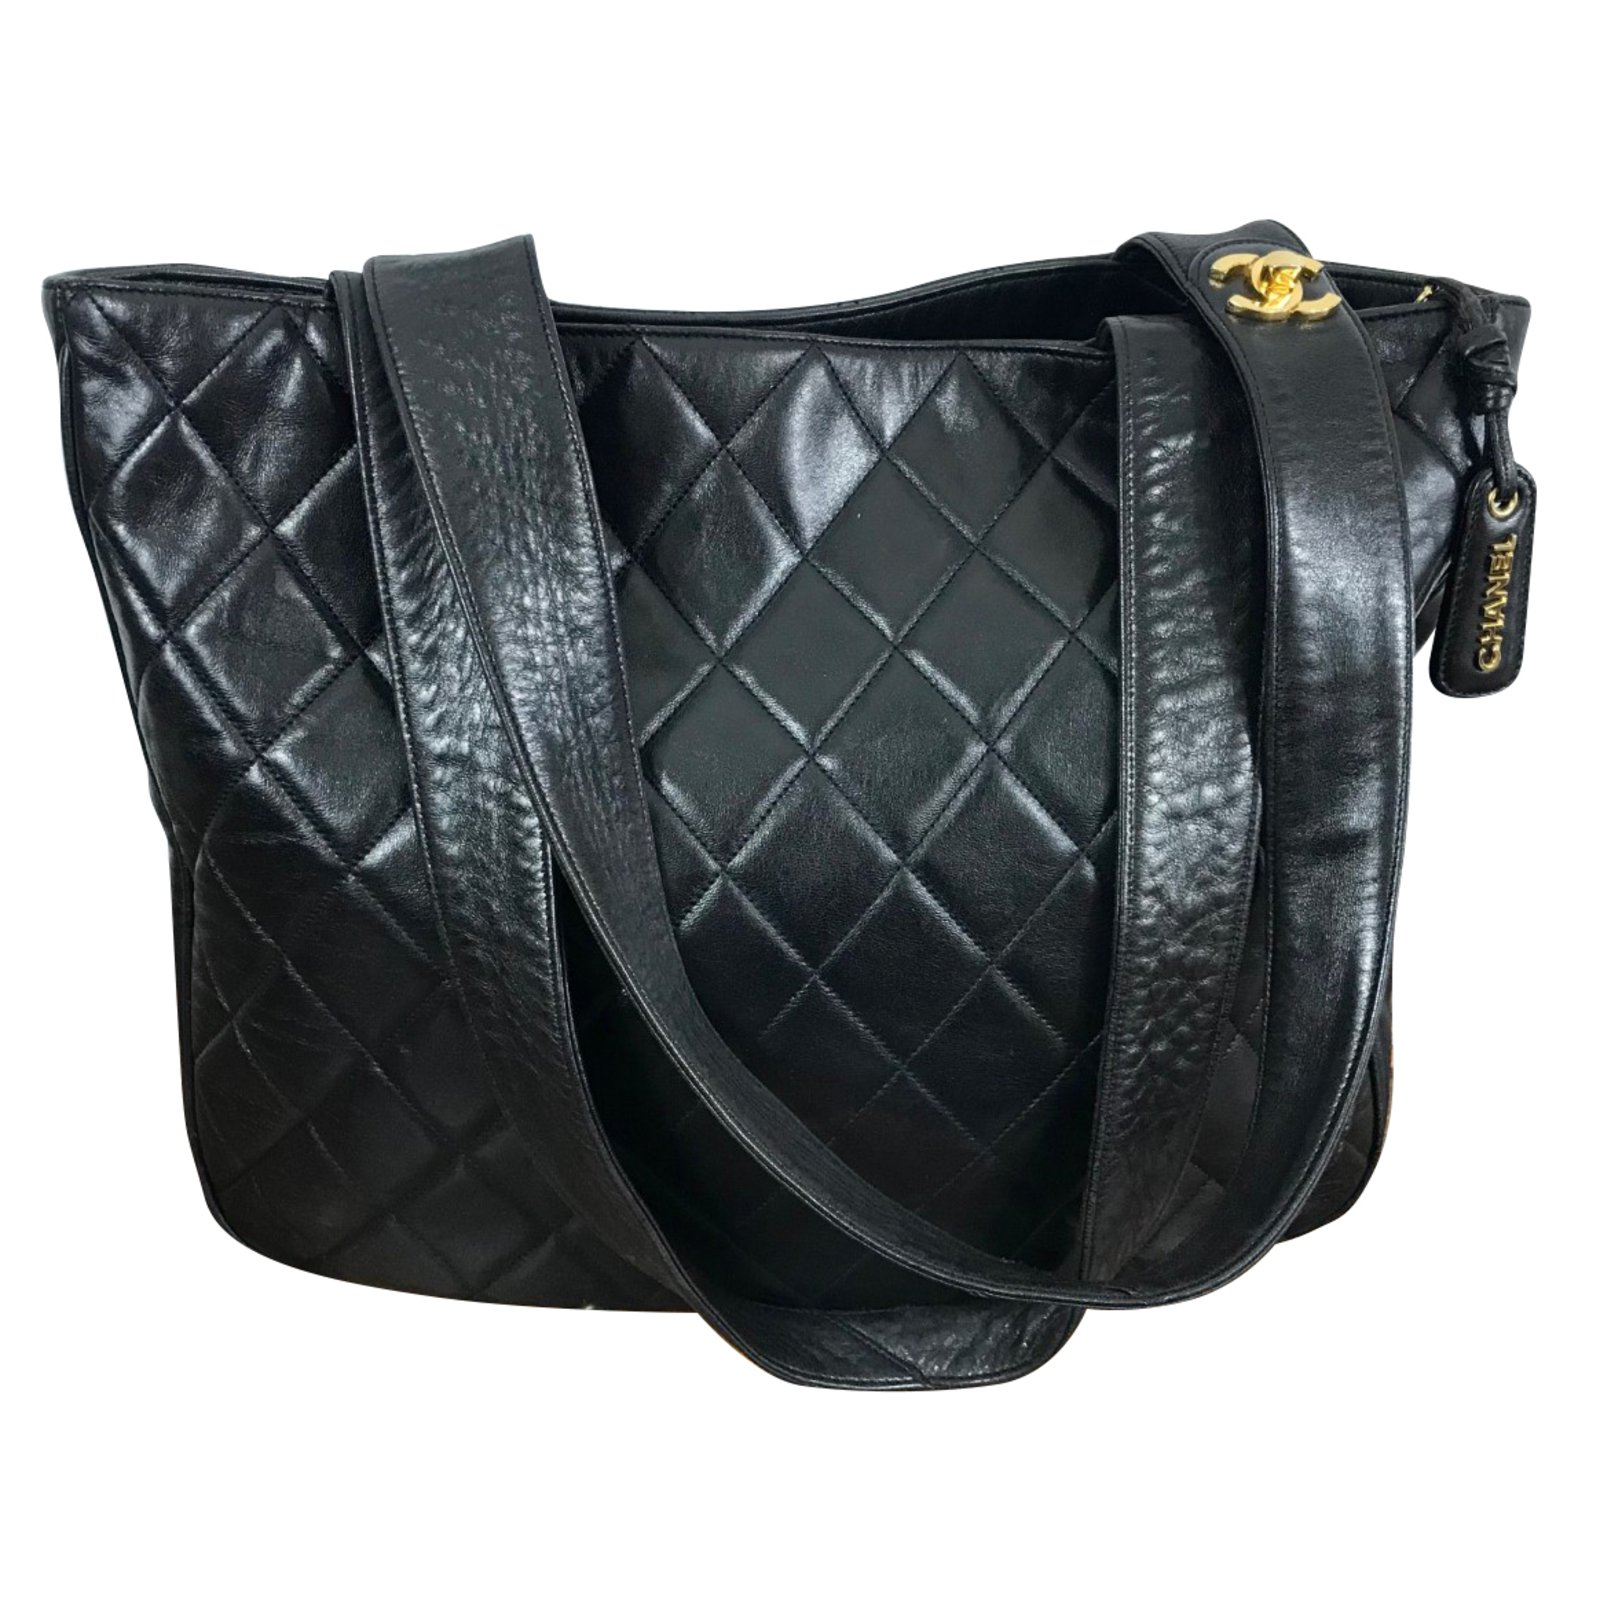 a24c19e123 Chanel Shopping bag quilted black leather Handbags Leather Black ref.66191  - Joli Closet